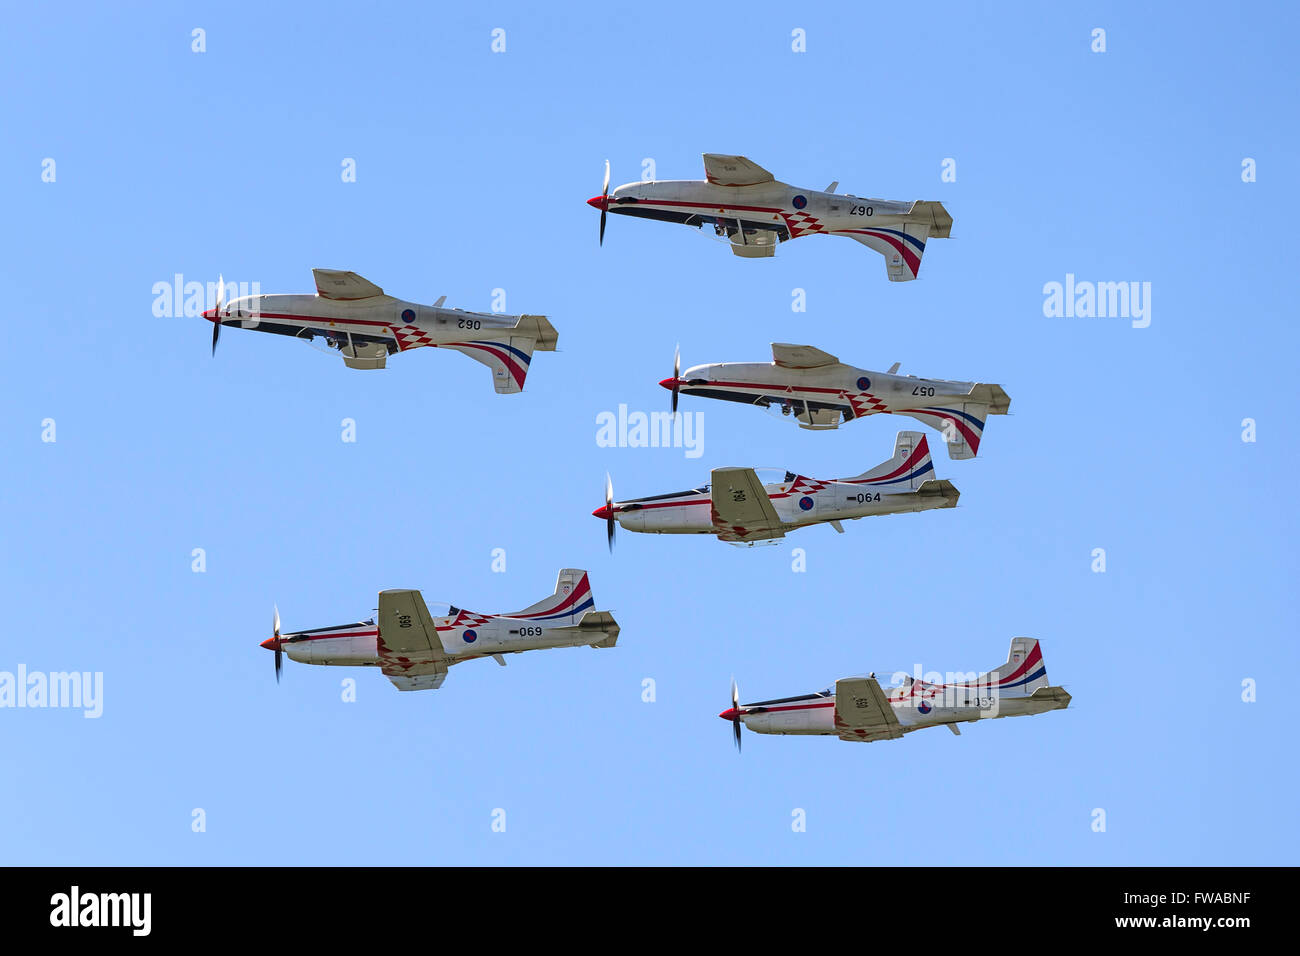 Croatian Air Force formation aerobatic display team 'Wings of Storm' flying their Pilatus PC-9M training aircraft. - Stock Image